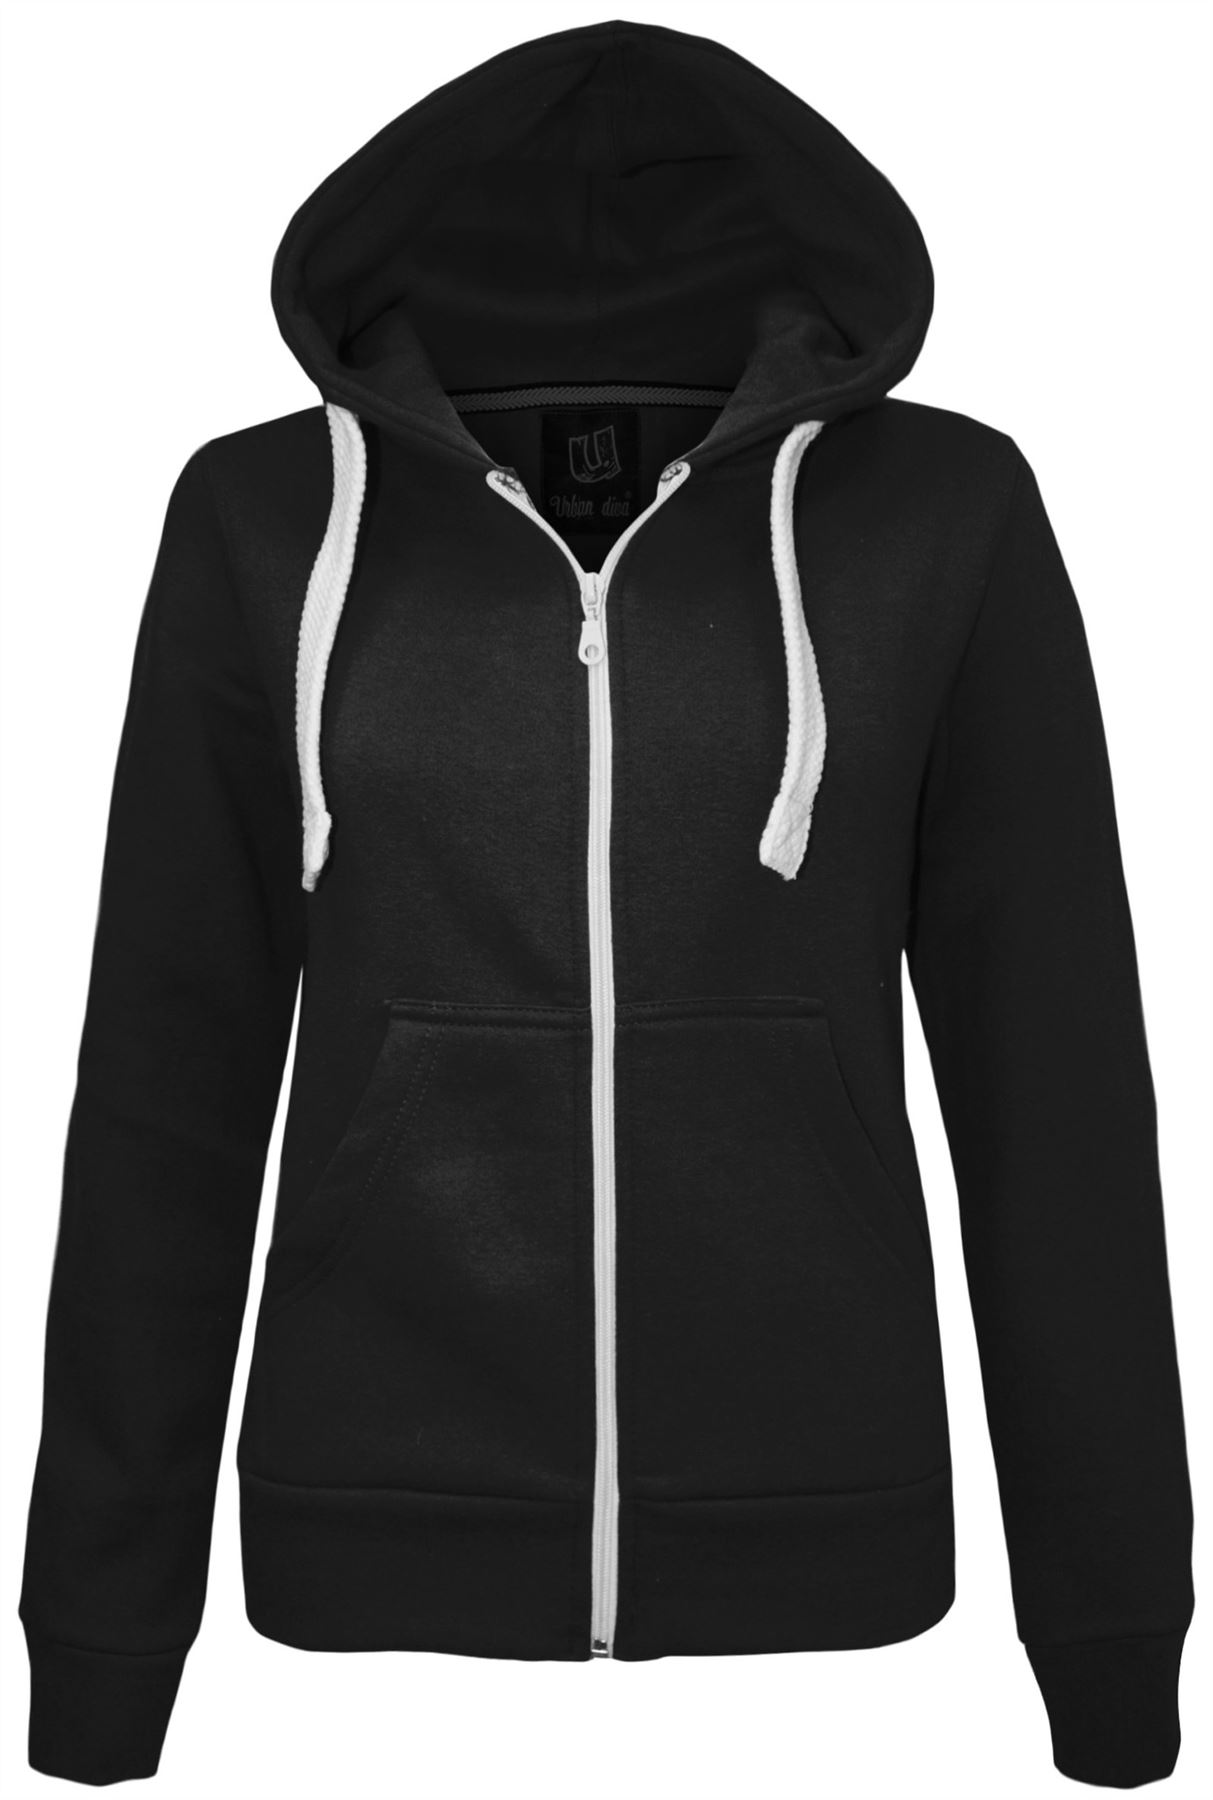 New Womens Ladies Plain Zip Hoodie Sweatshirt Fleece ...